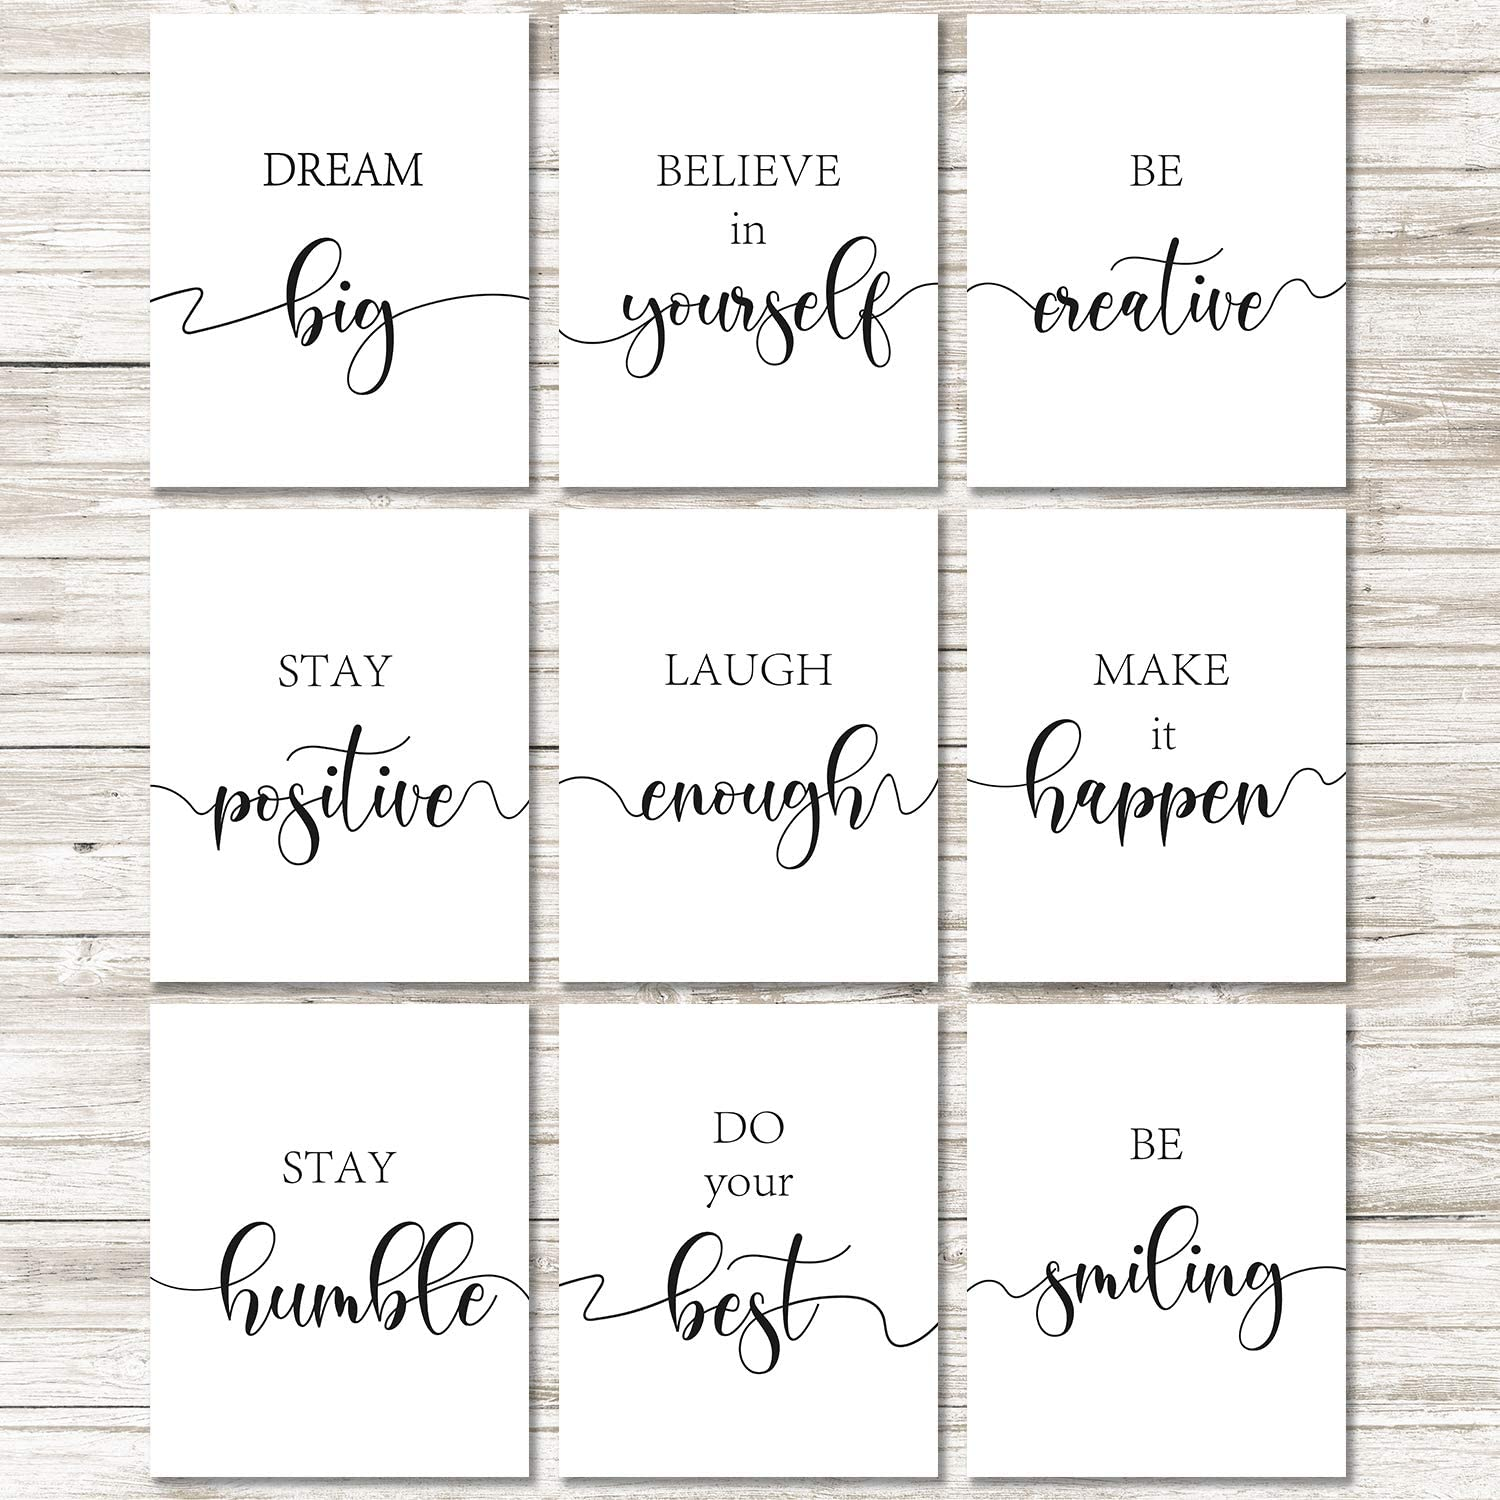 9 Pieces Inspirational Quote Wall Art Posters Motivational Quote Phrases Art Print Poster Unframed Positive Posters for Office or Living Room Home Decoration, Black and White